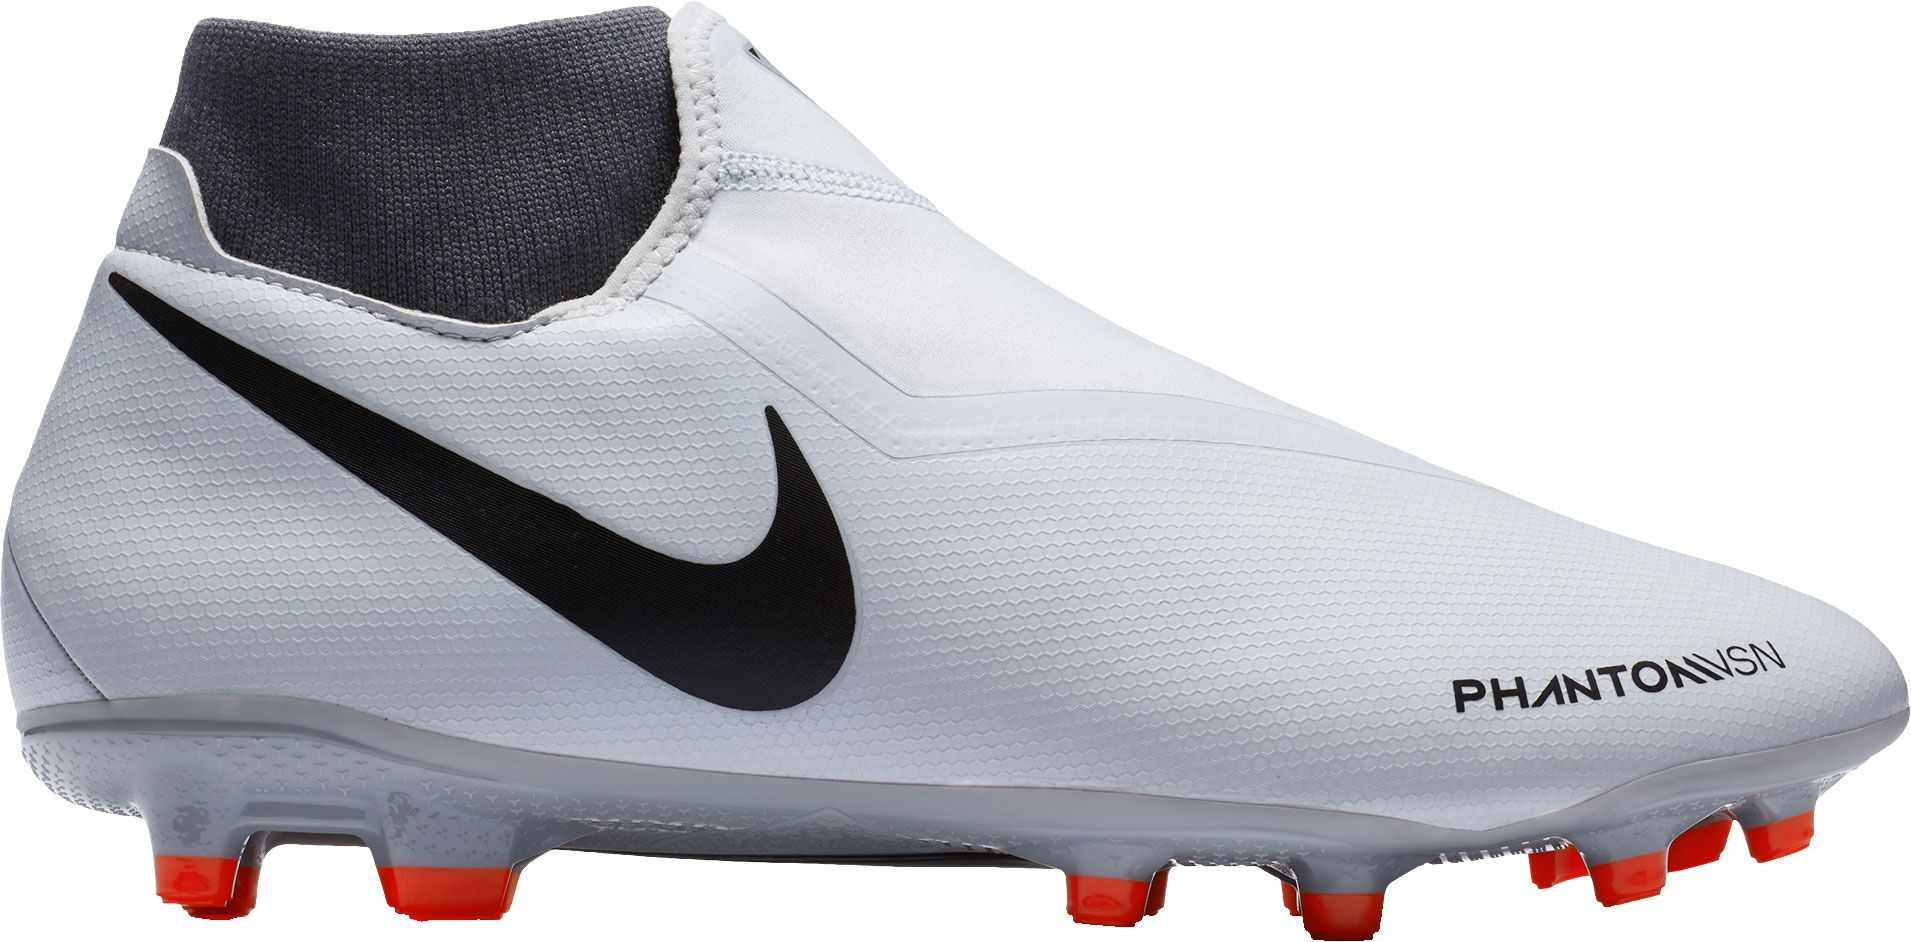 quality design ffc57 beaa4 Nike Phantom Vision Academy Dynamic Fit MG Soccer Cleats, Men s, Size   M10.5 W12, Gray